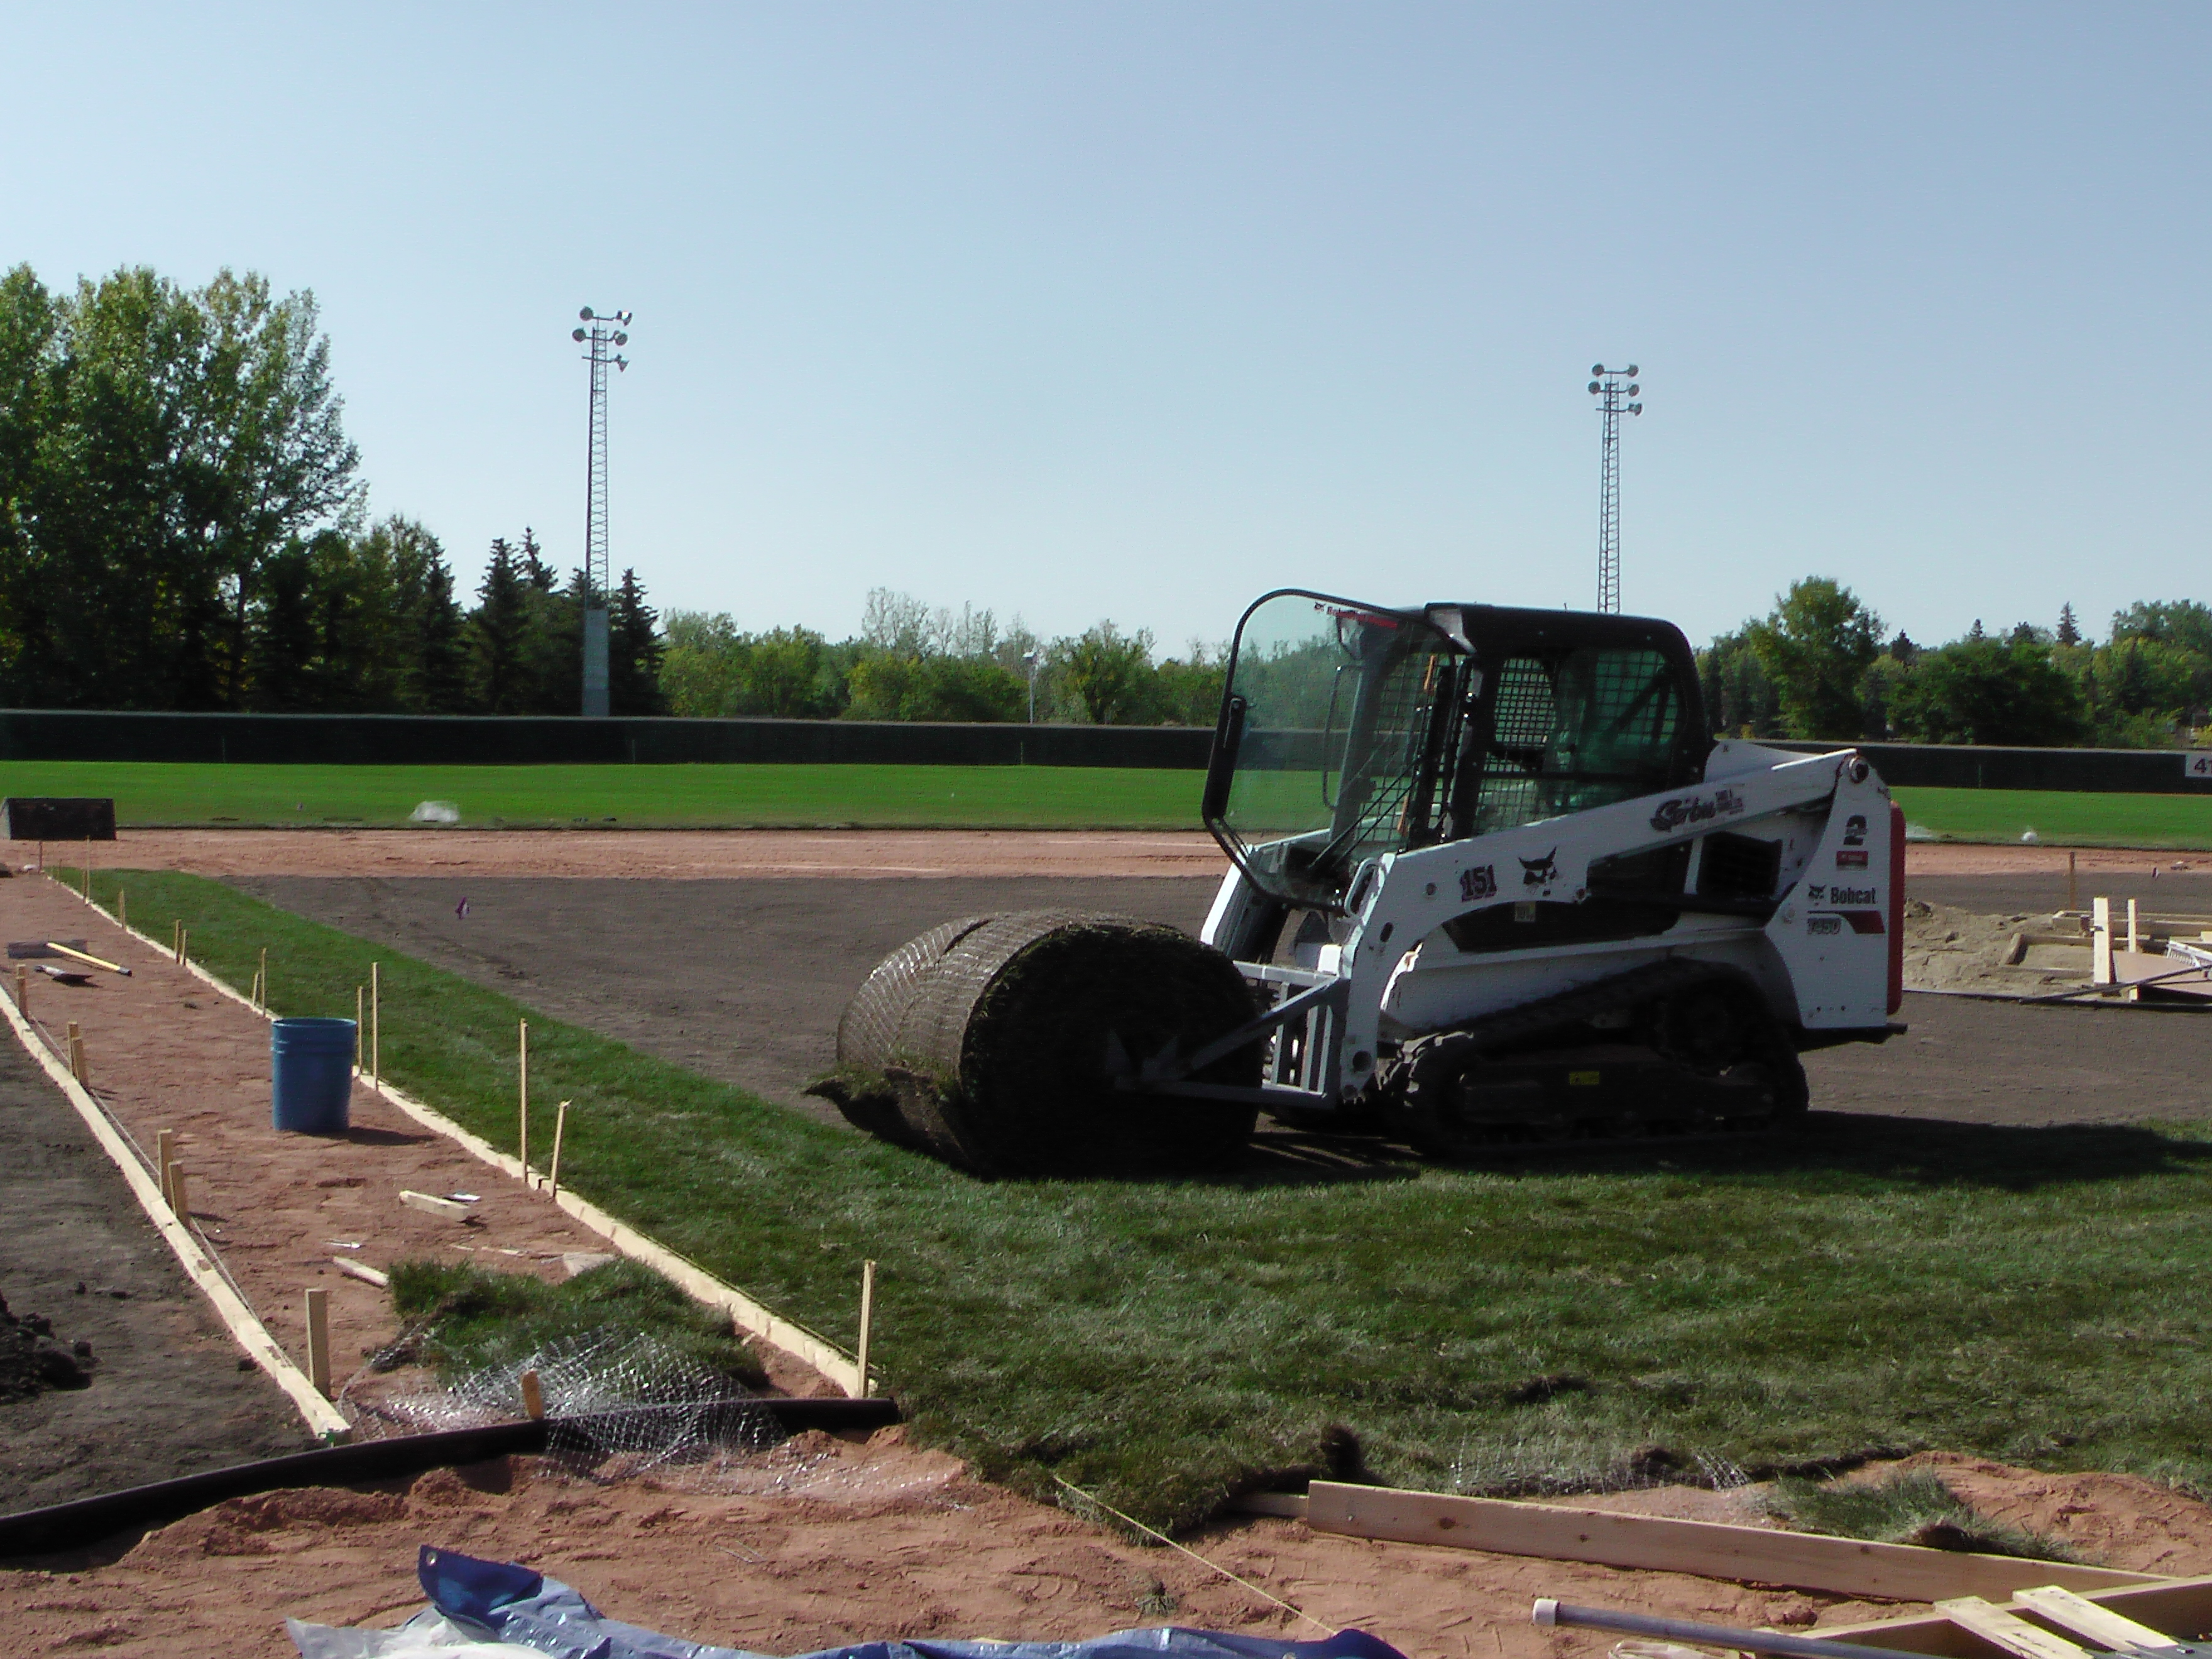 Sept 5 2018 Optimist Park Field Renovations, Placing New Sod/Leveling! - Image 1